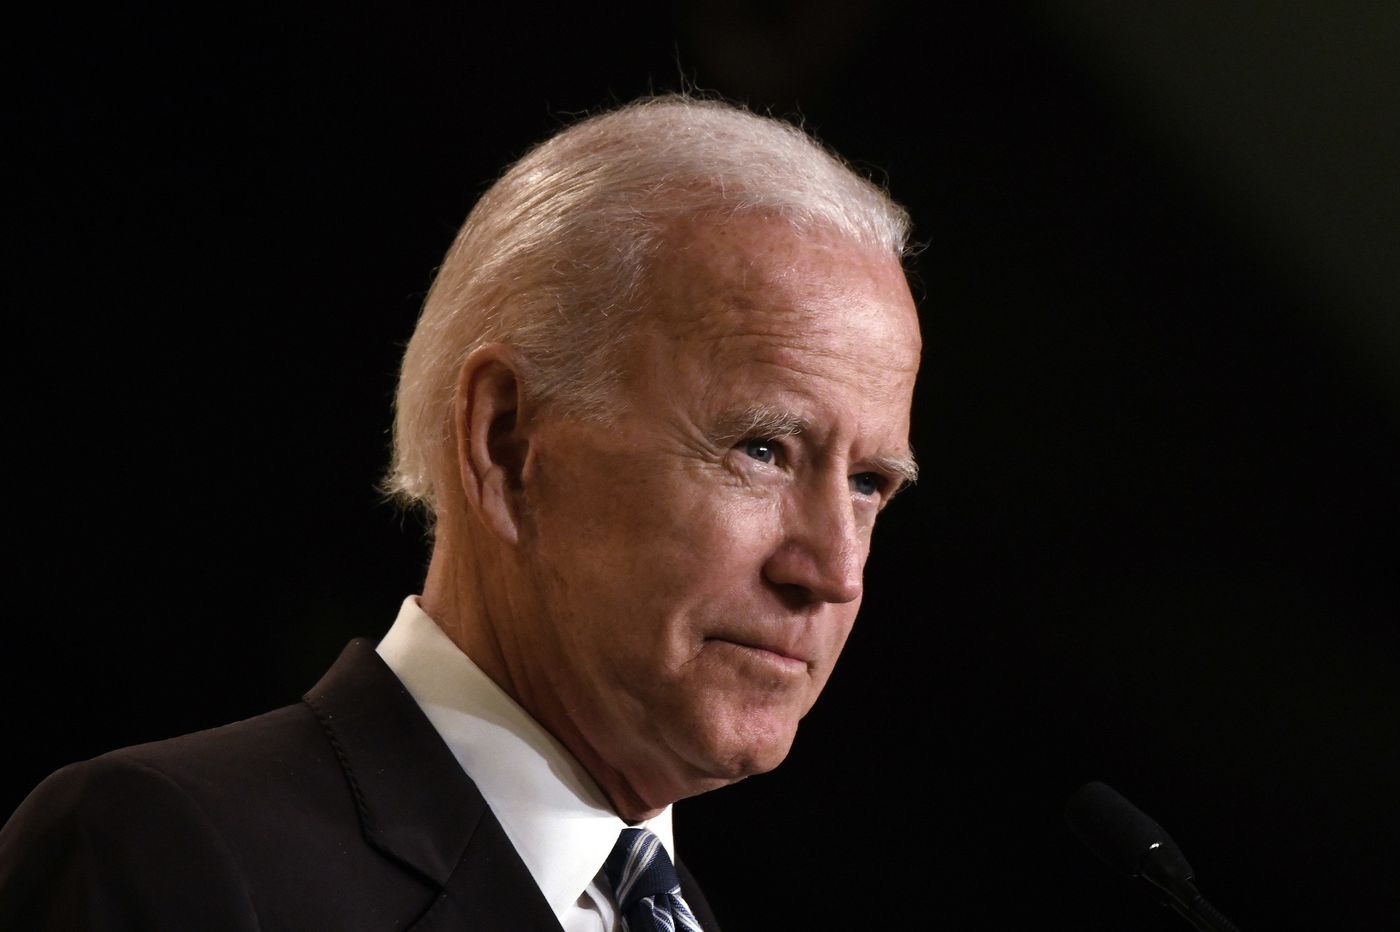 'I was shocked': Nevada Democrat accuses Biden of touching, kissing her without consent